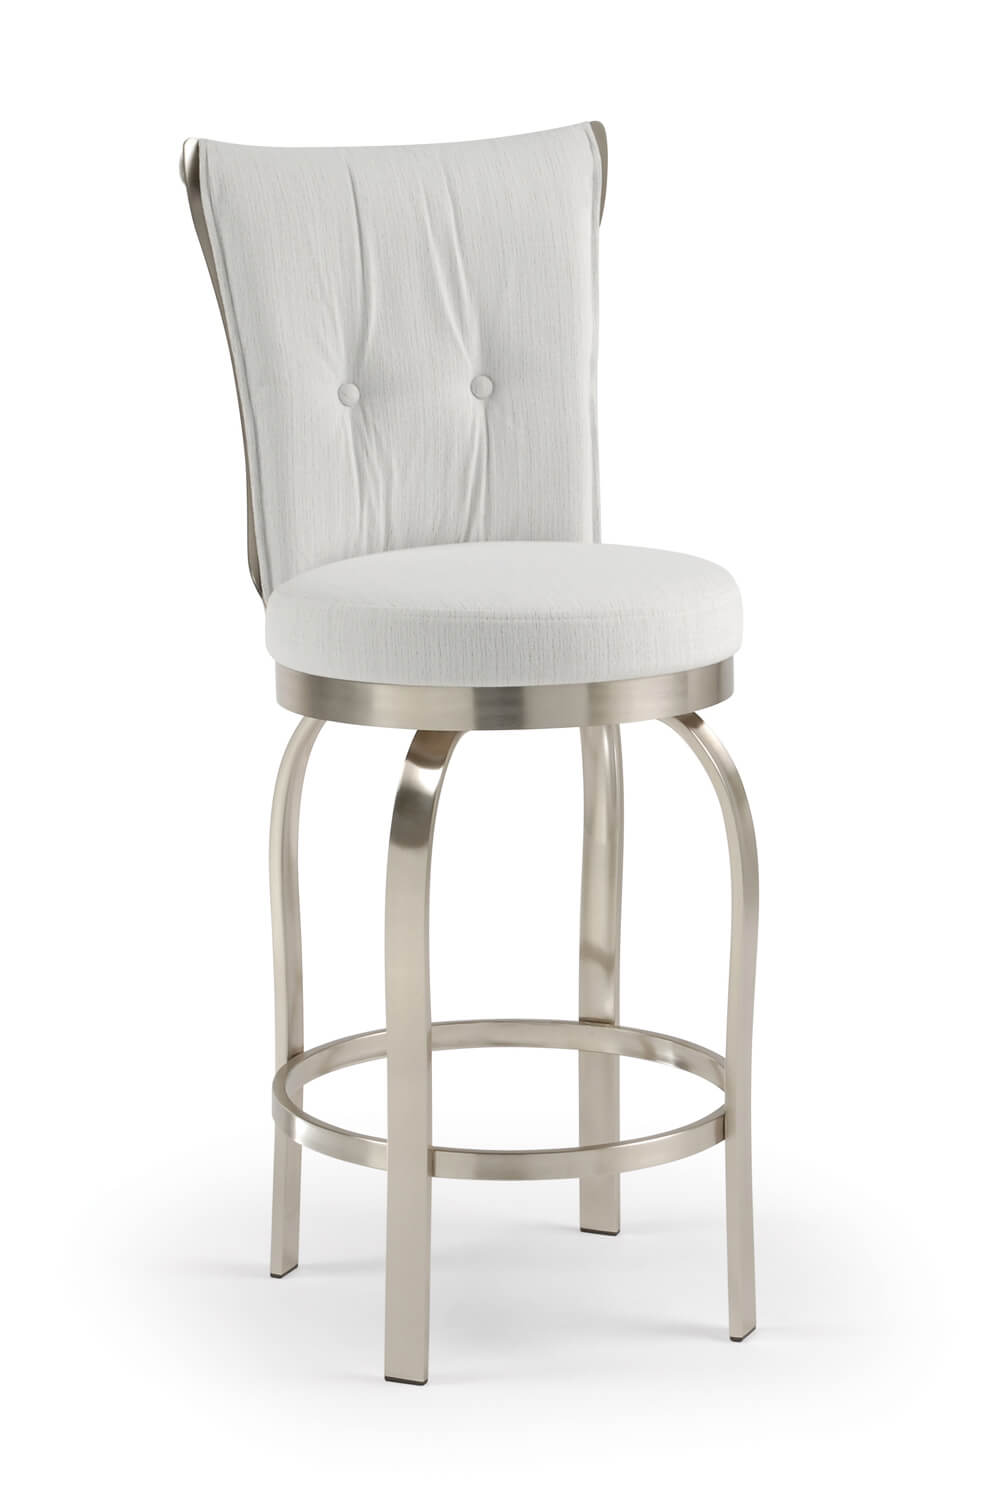 Buy Trica S Tuscany Modern Brushed Steel Swivel Bar Stool